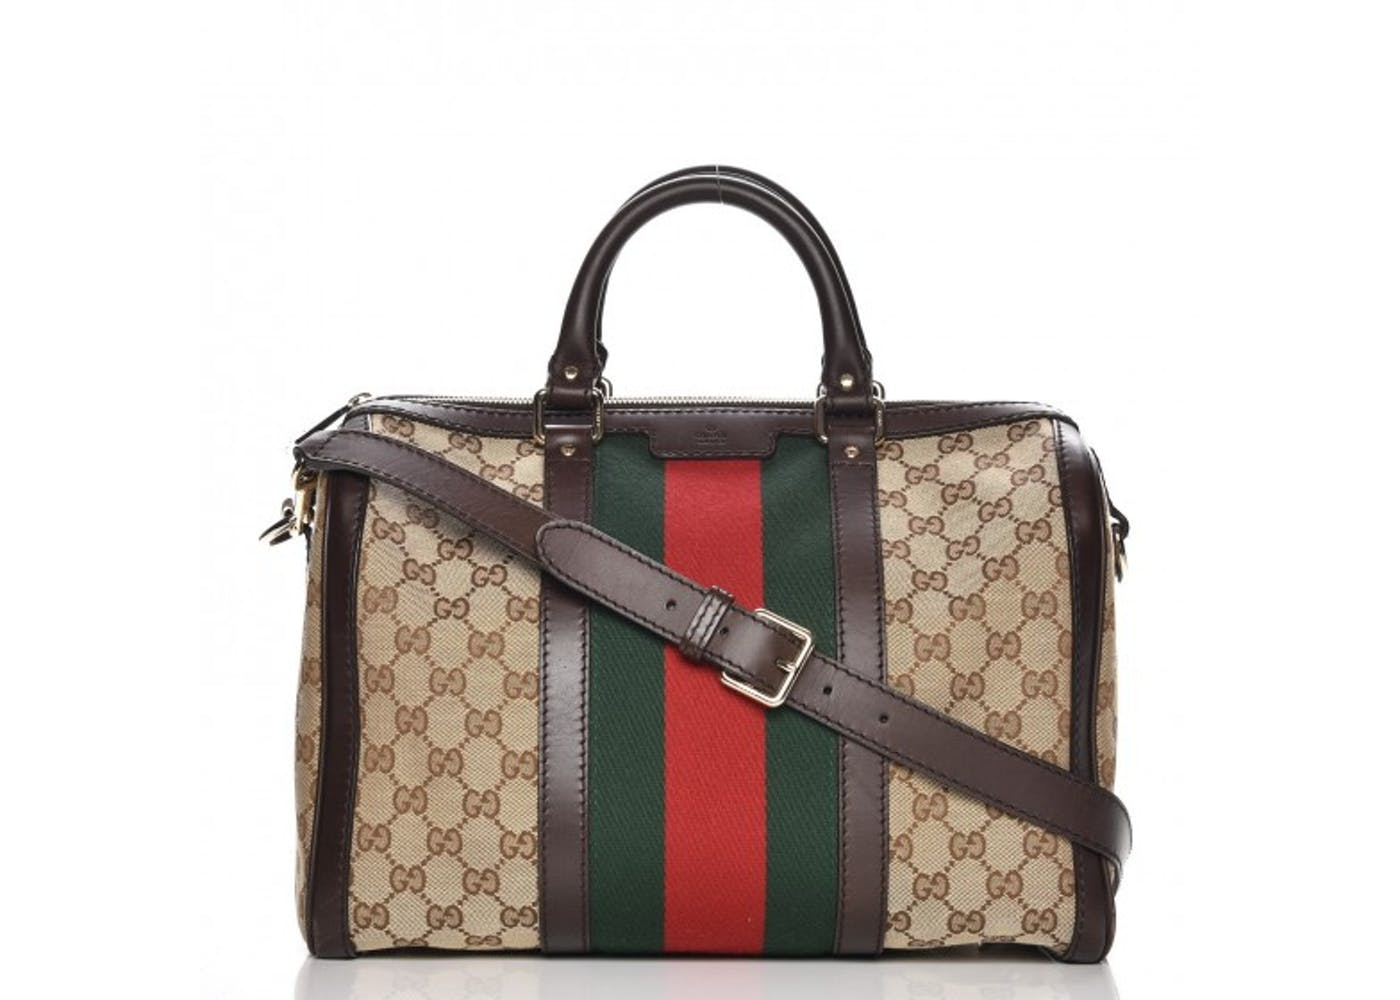 88f3f504fe94 Gucci Vintage Web Boston Bag Black Red Green | Stanford Center for ...